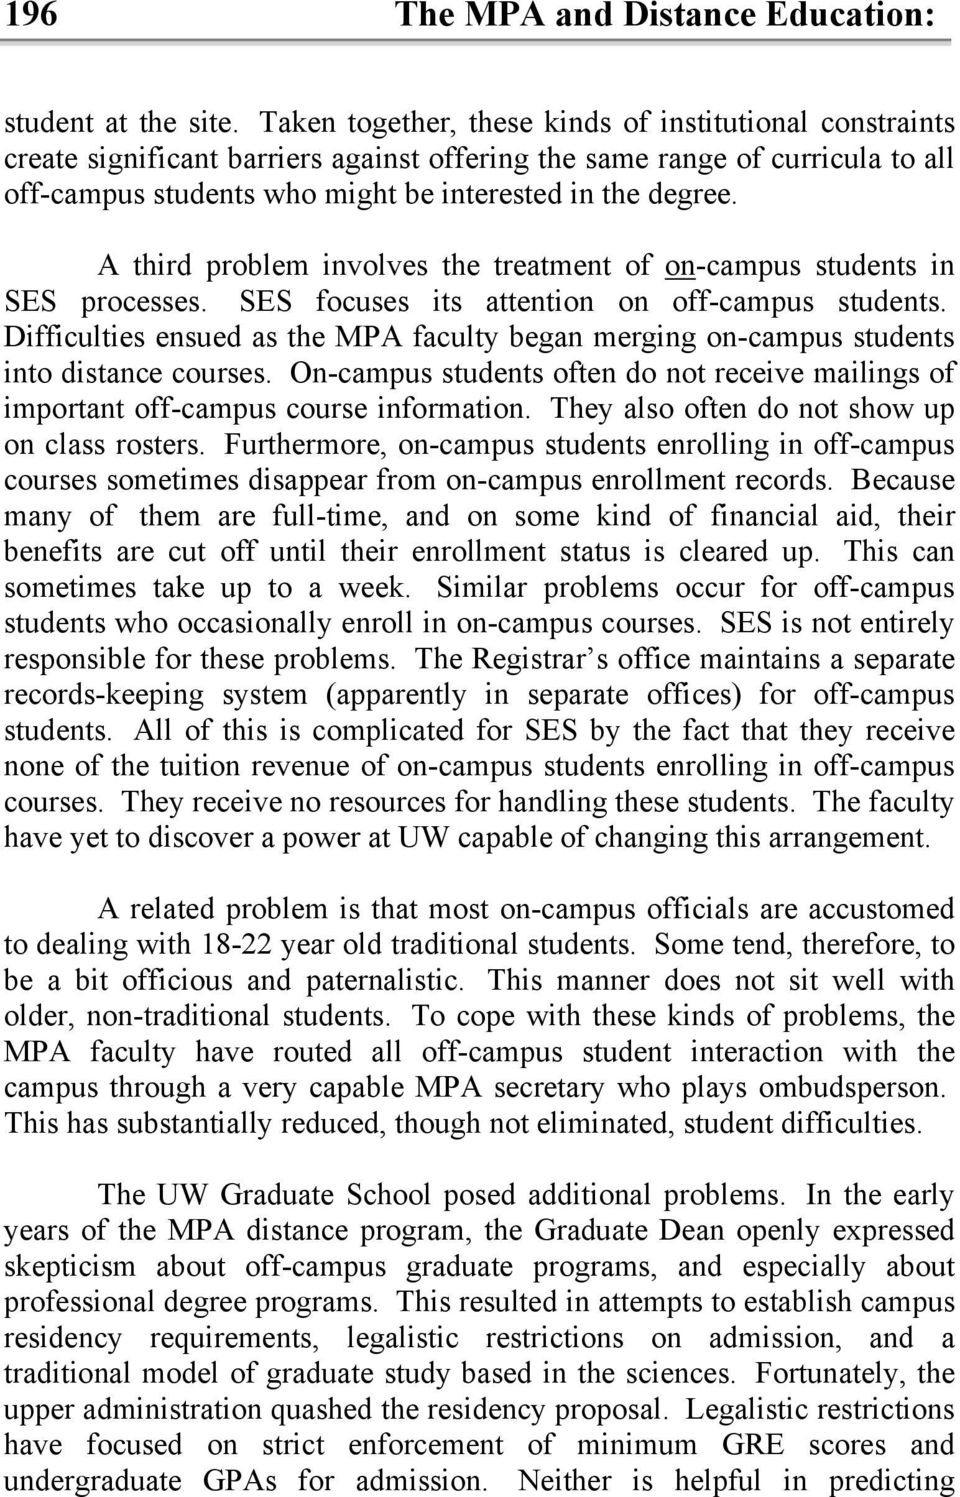 A third problem involves the treatment of on-campus students in SES processes. SES focuses its attention on off-campus students.